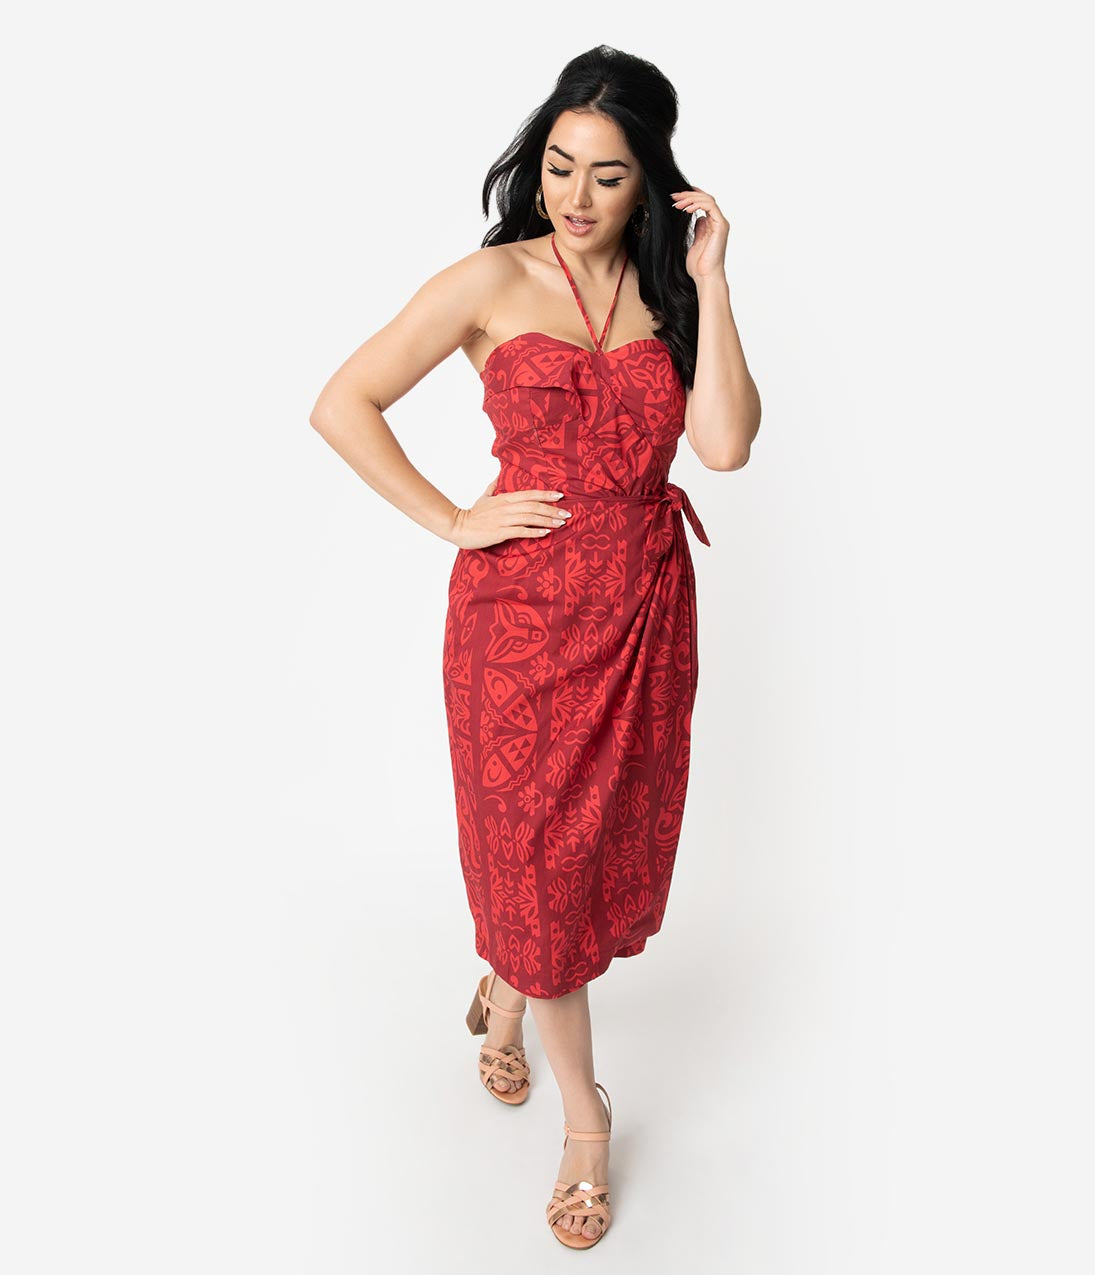 Retro Tiki Dress – Tropical, Hawaiian Dresses Alfred Shaheen Red Tiki Pareau Print Sarong $82.00 AT vintagedancer.com